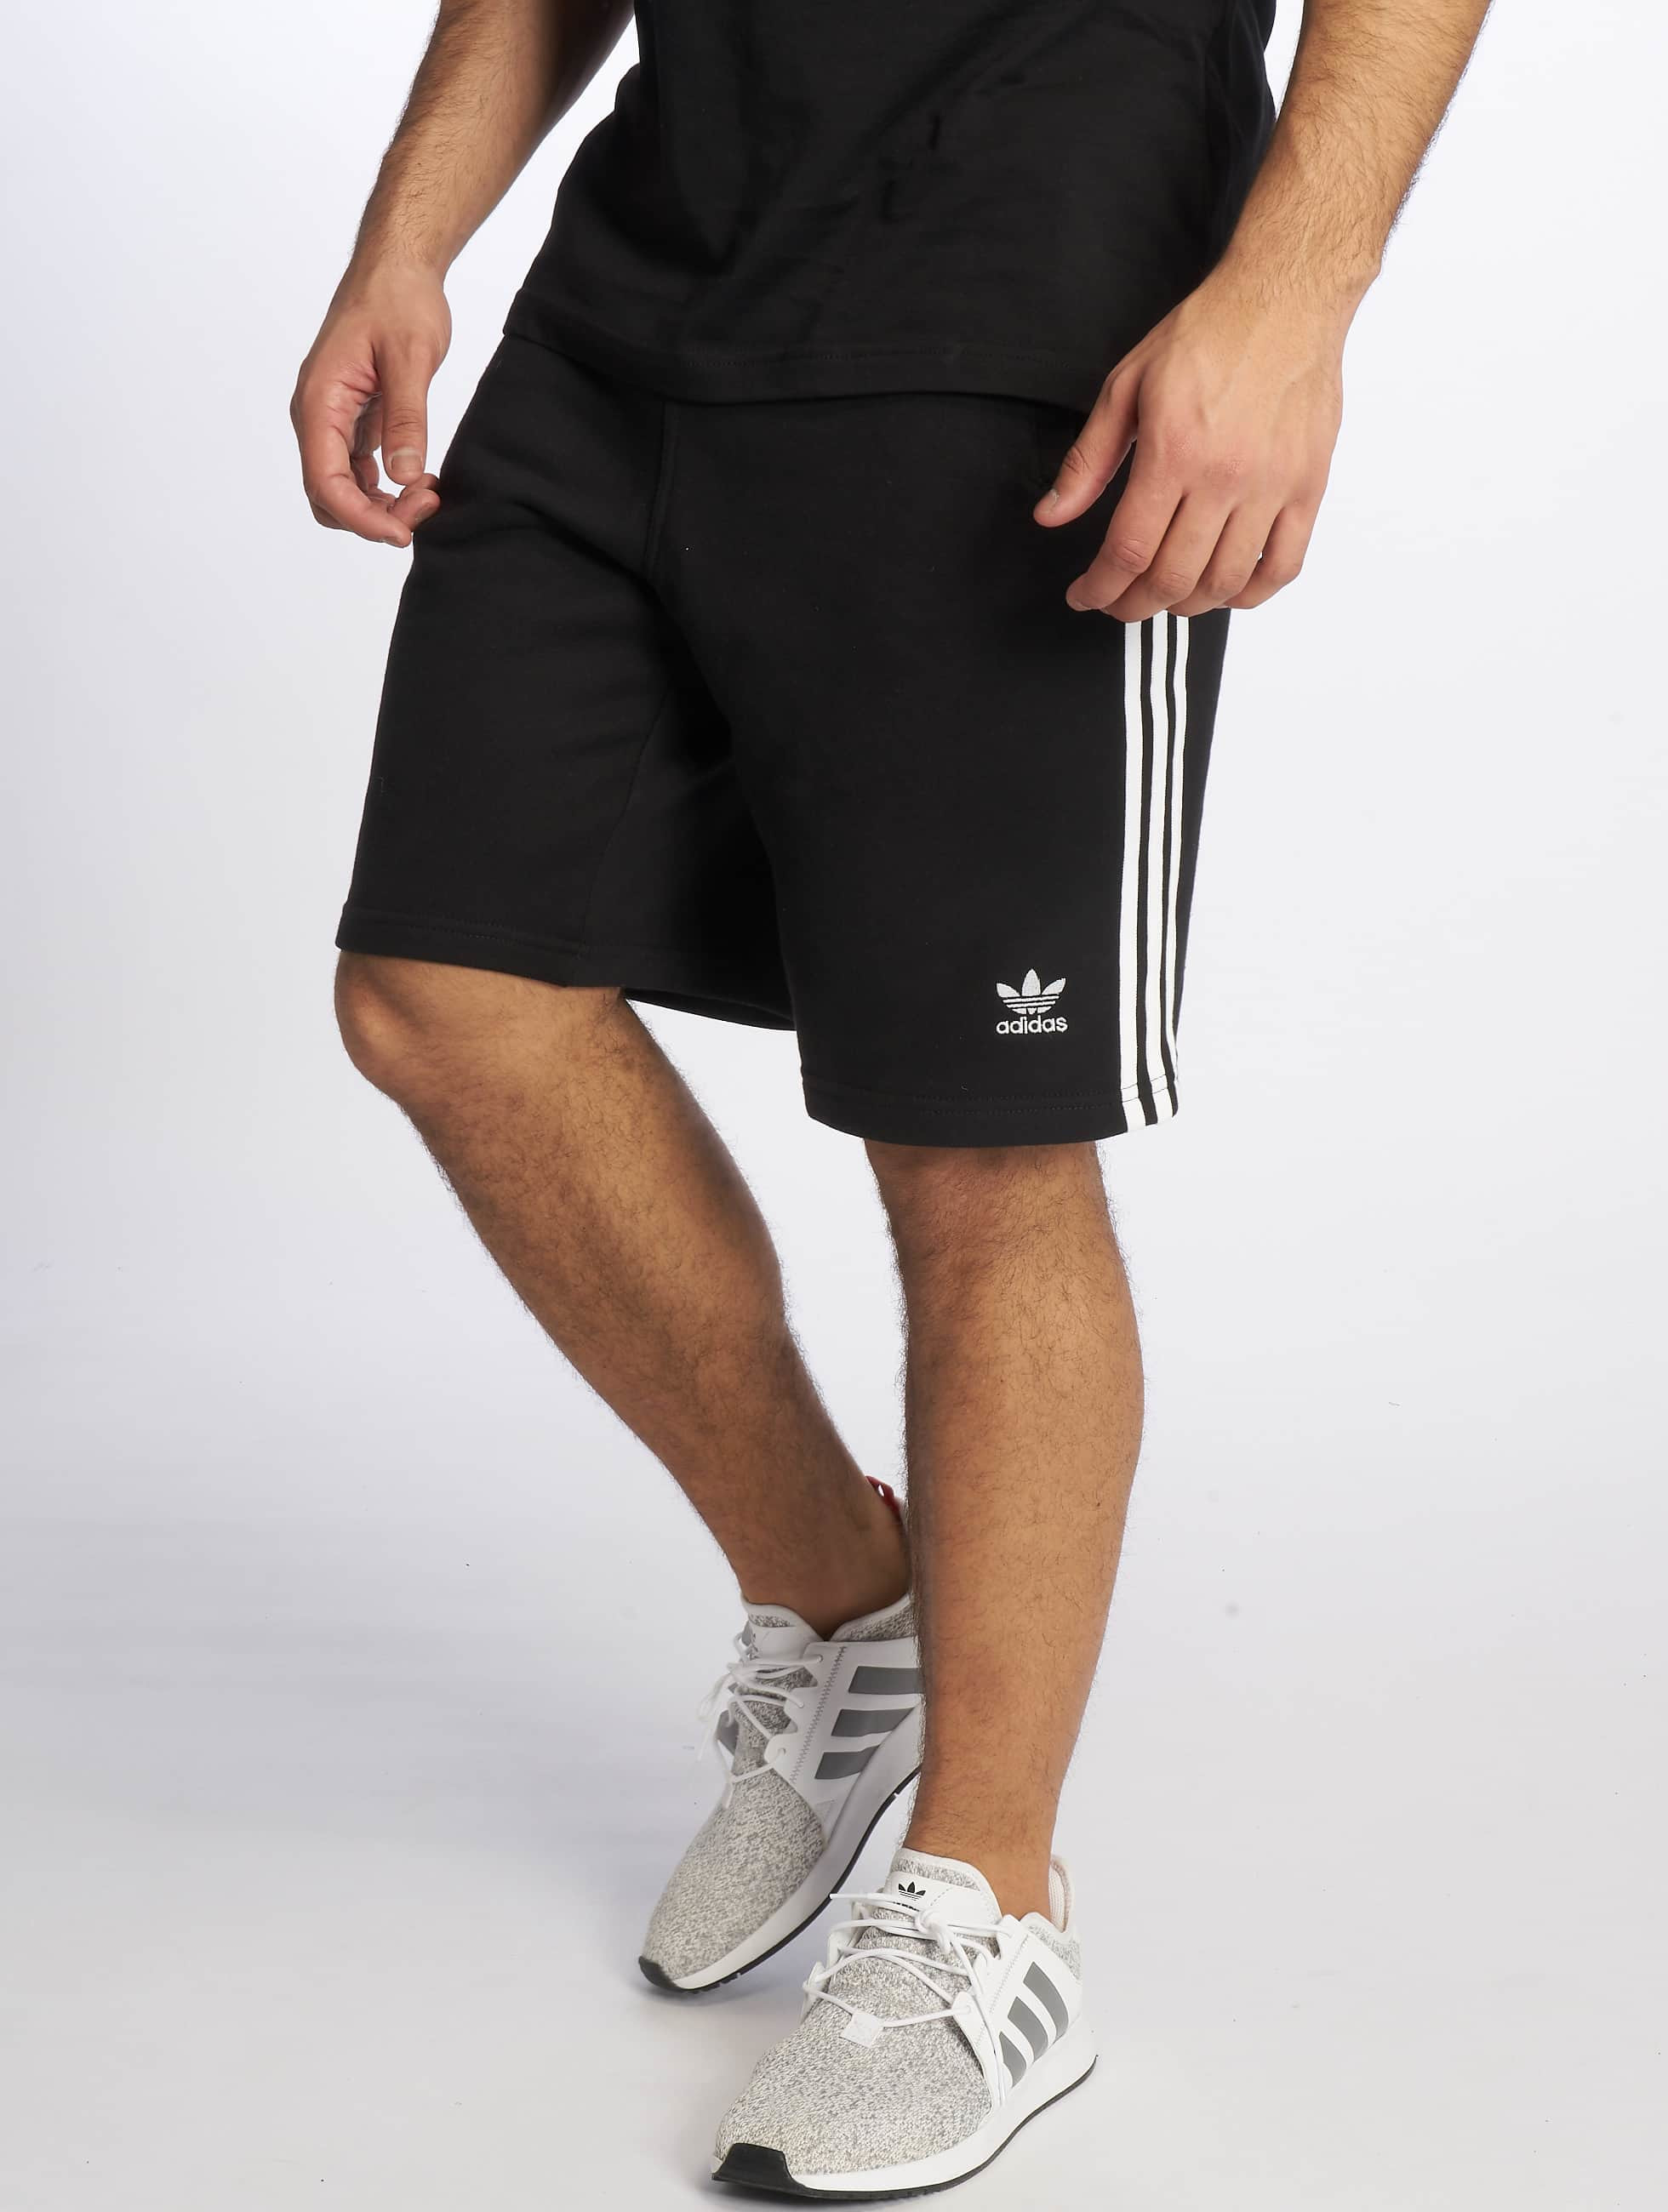 3c9b8ce75a8 adidas originals broek / shorts 3-Stripe in zwart 599292